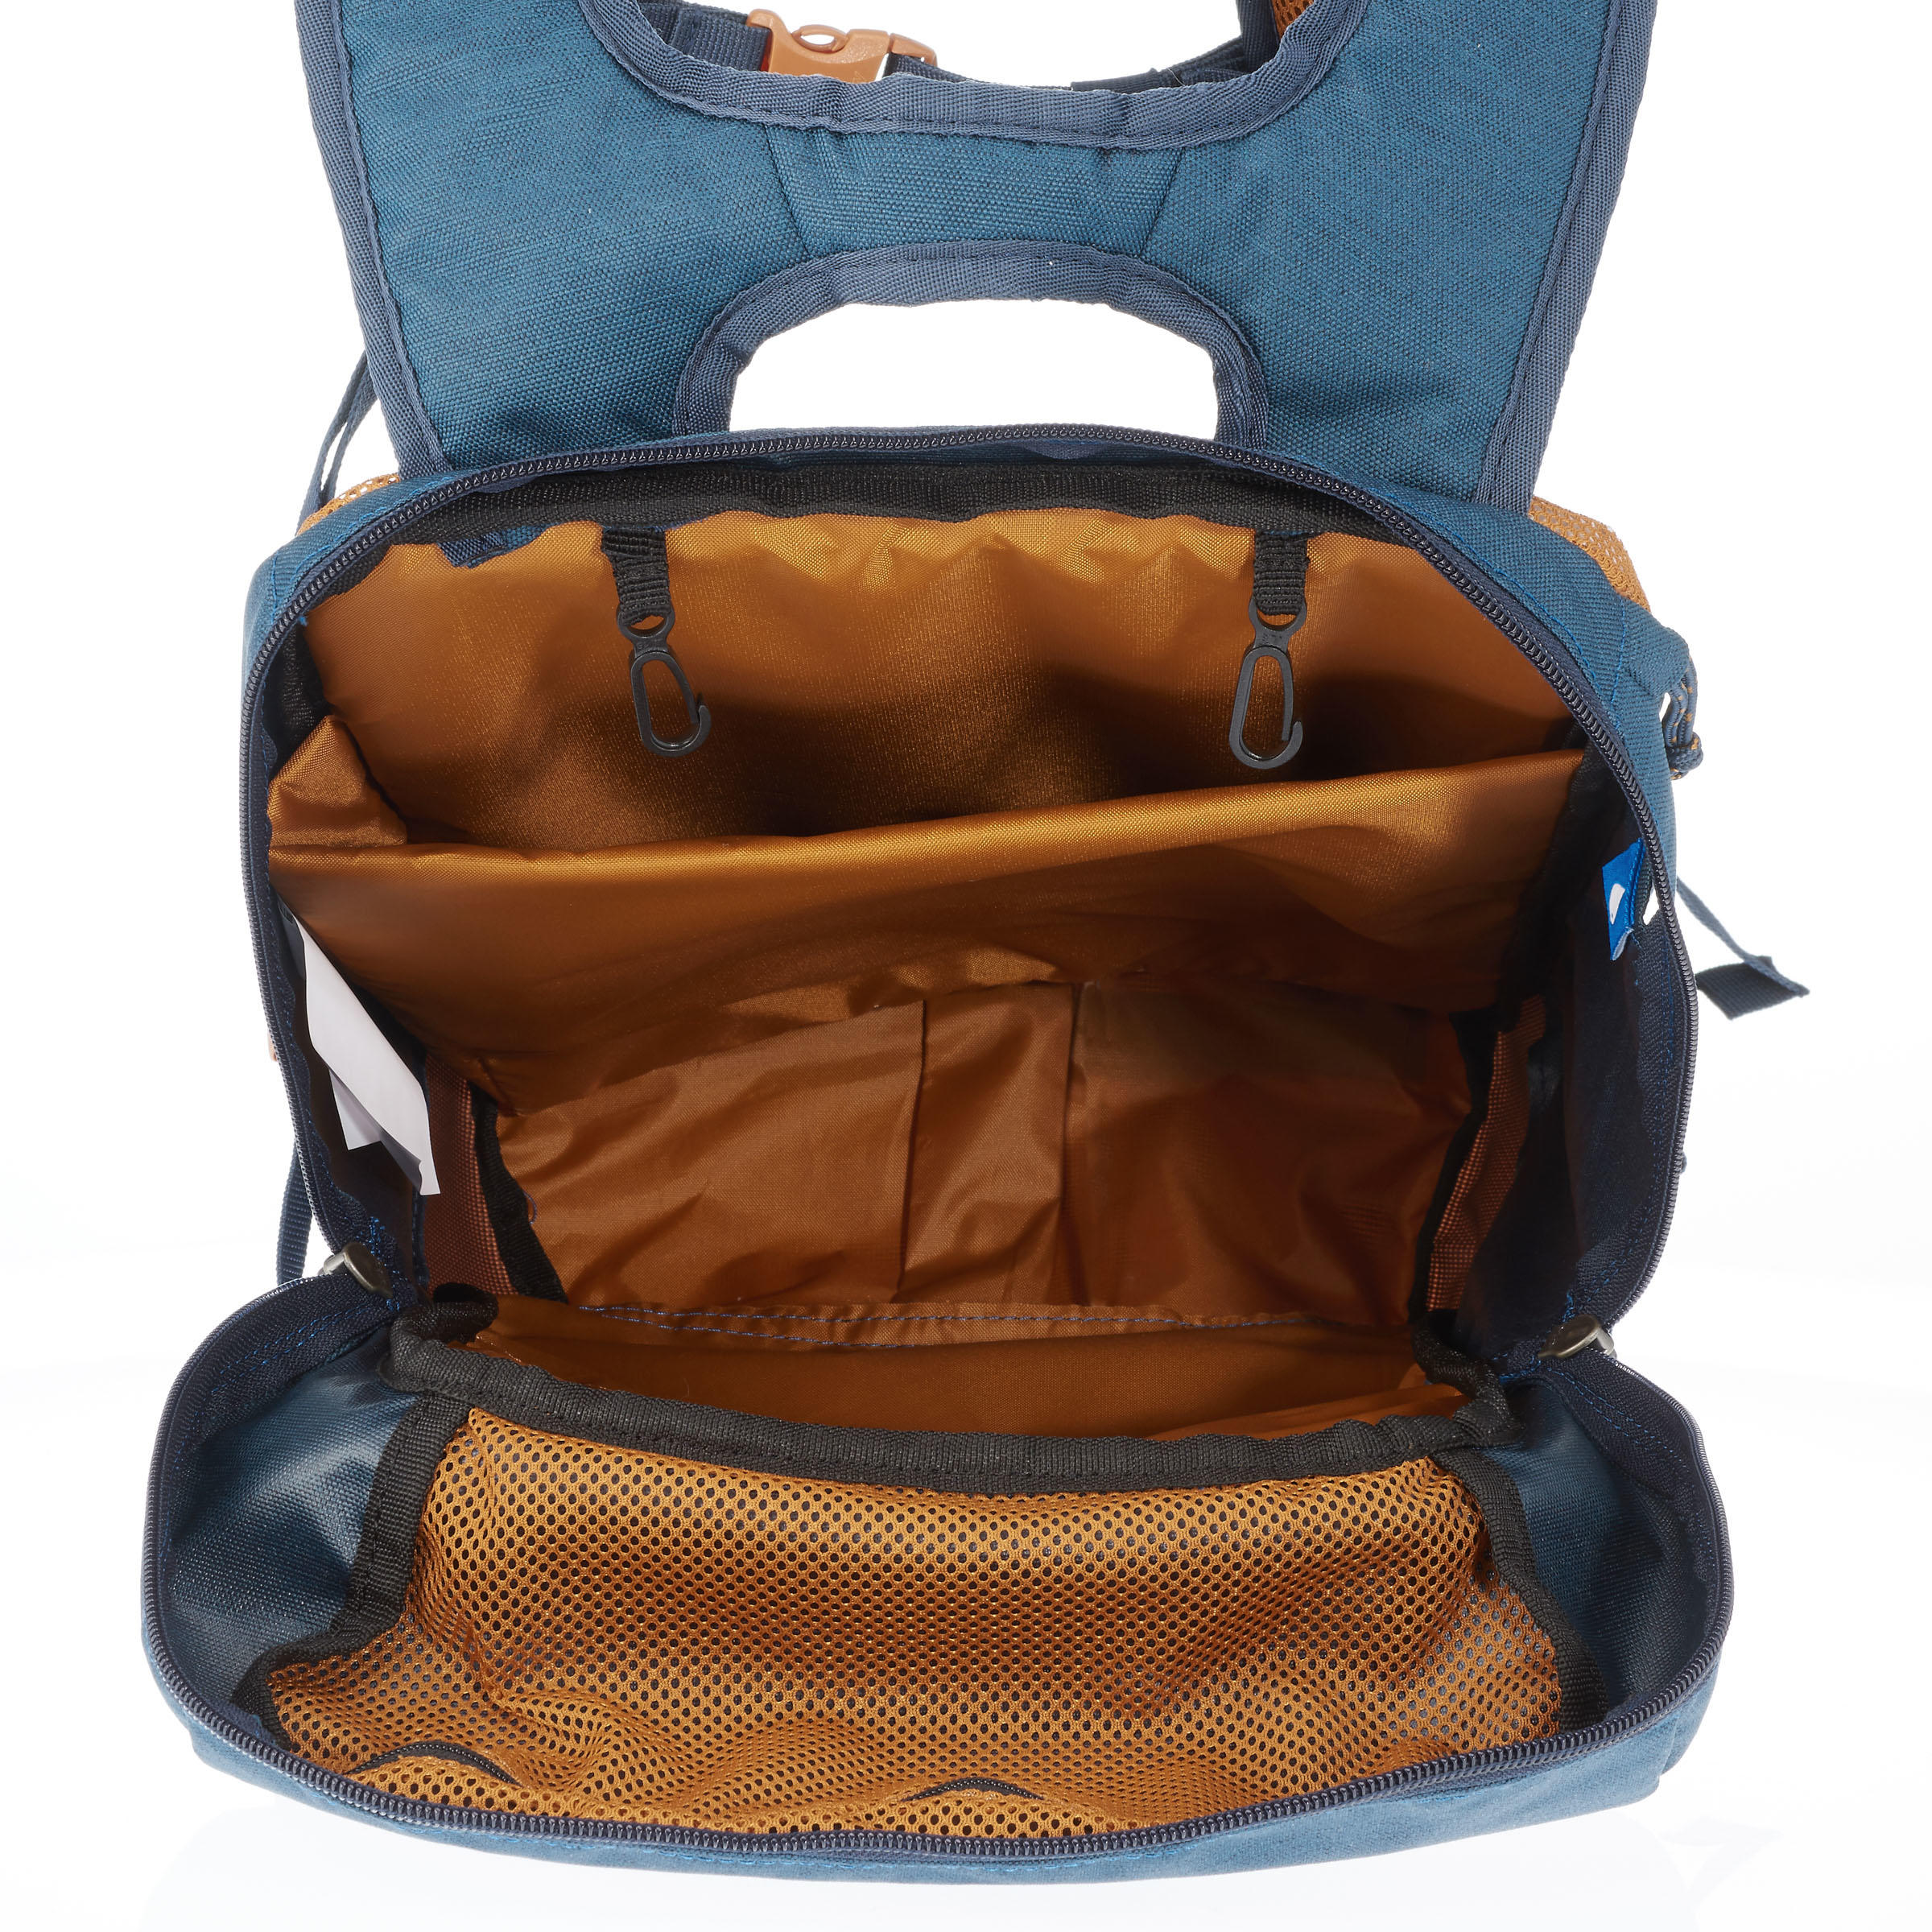 Hiking Backpack NH500 20L - Blue